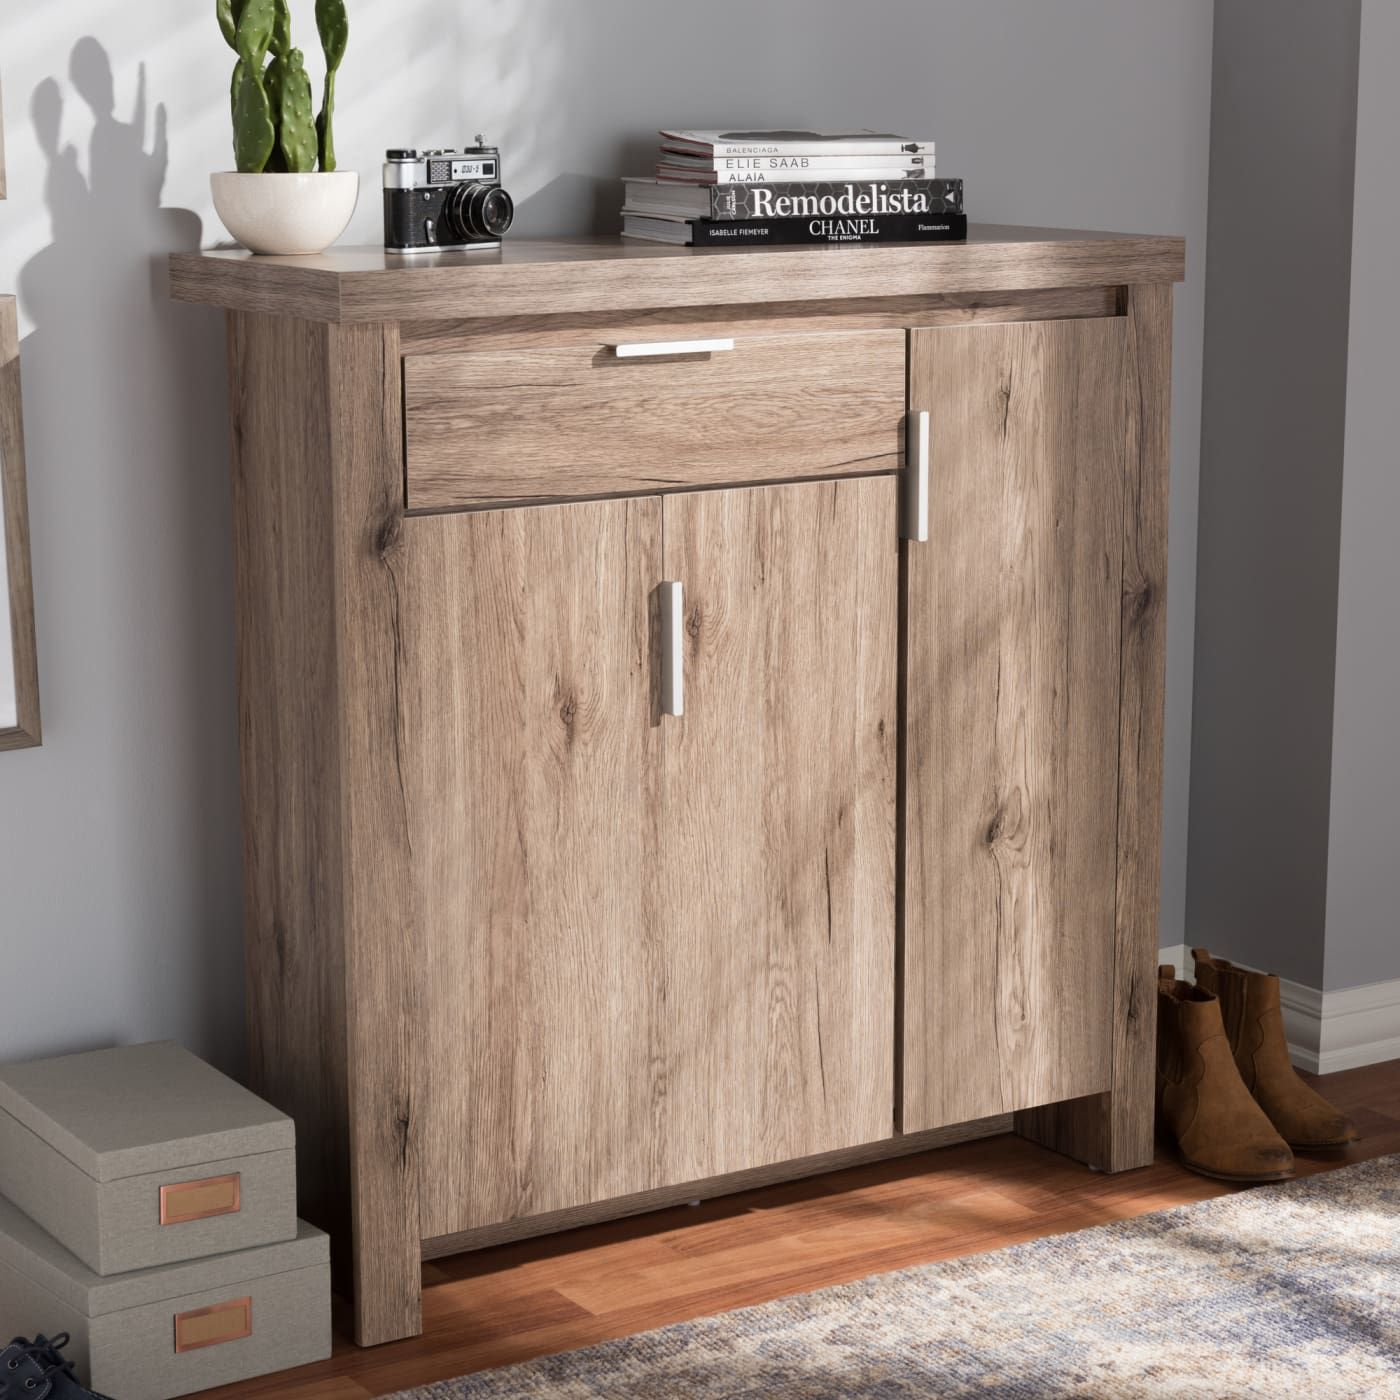 The Fresh Natural Look Of The Laverne Shoe Cabinet Makes It An Ideal Addition To Your Home Shoe Storage Cabinet Rustic Storage Cabinets Storage Cabinet